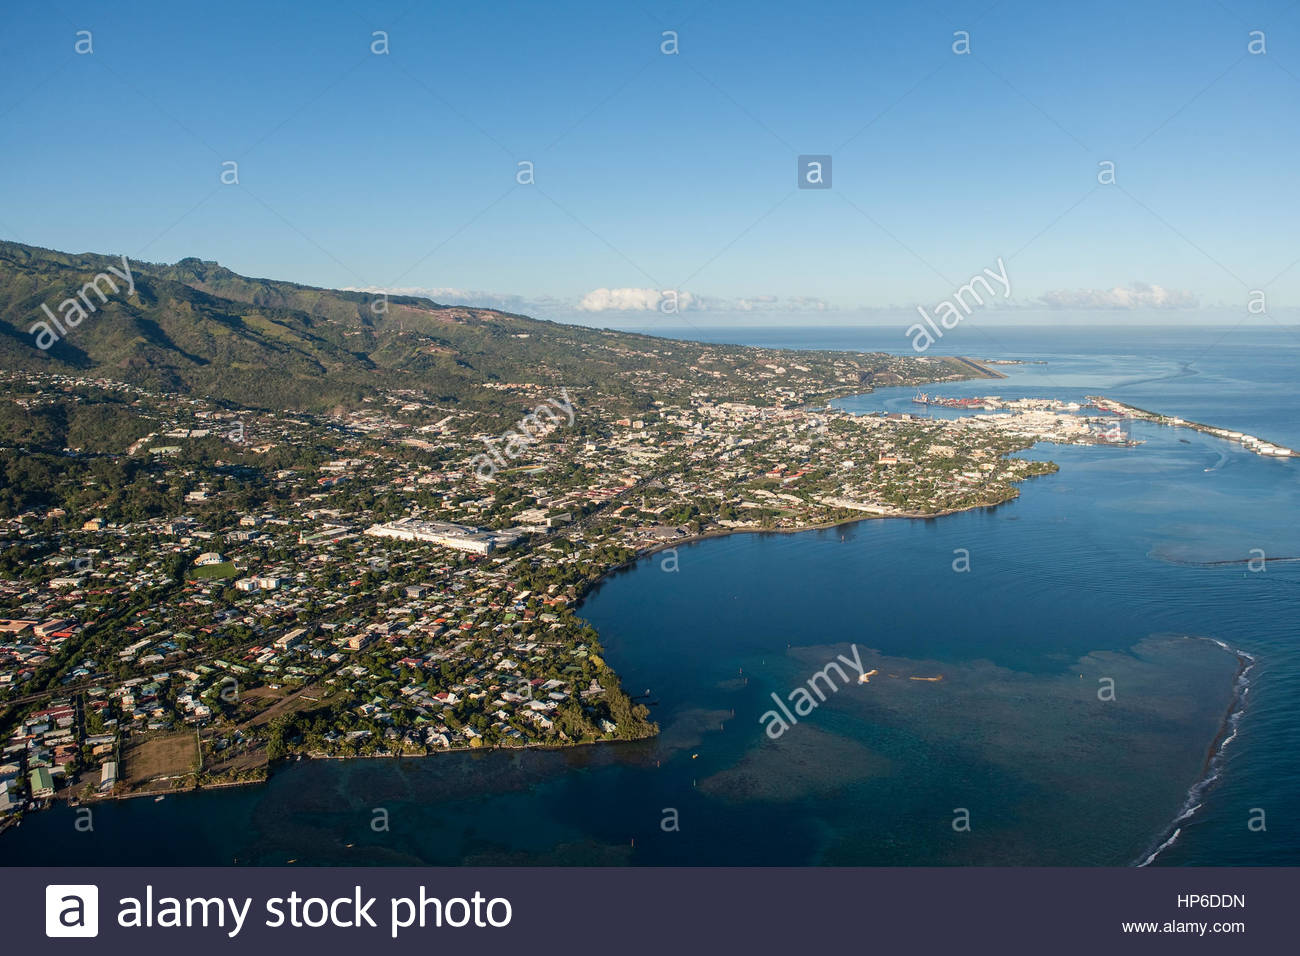 city papeete on island tahiti stockfotos city papeete on island tahiti bilder alamy. Black Bedroom Furniture Sets. Home Design Ideas